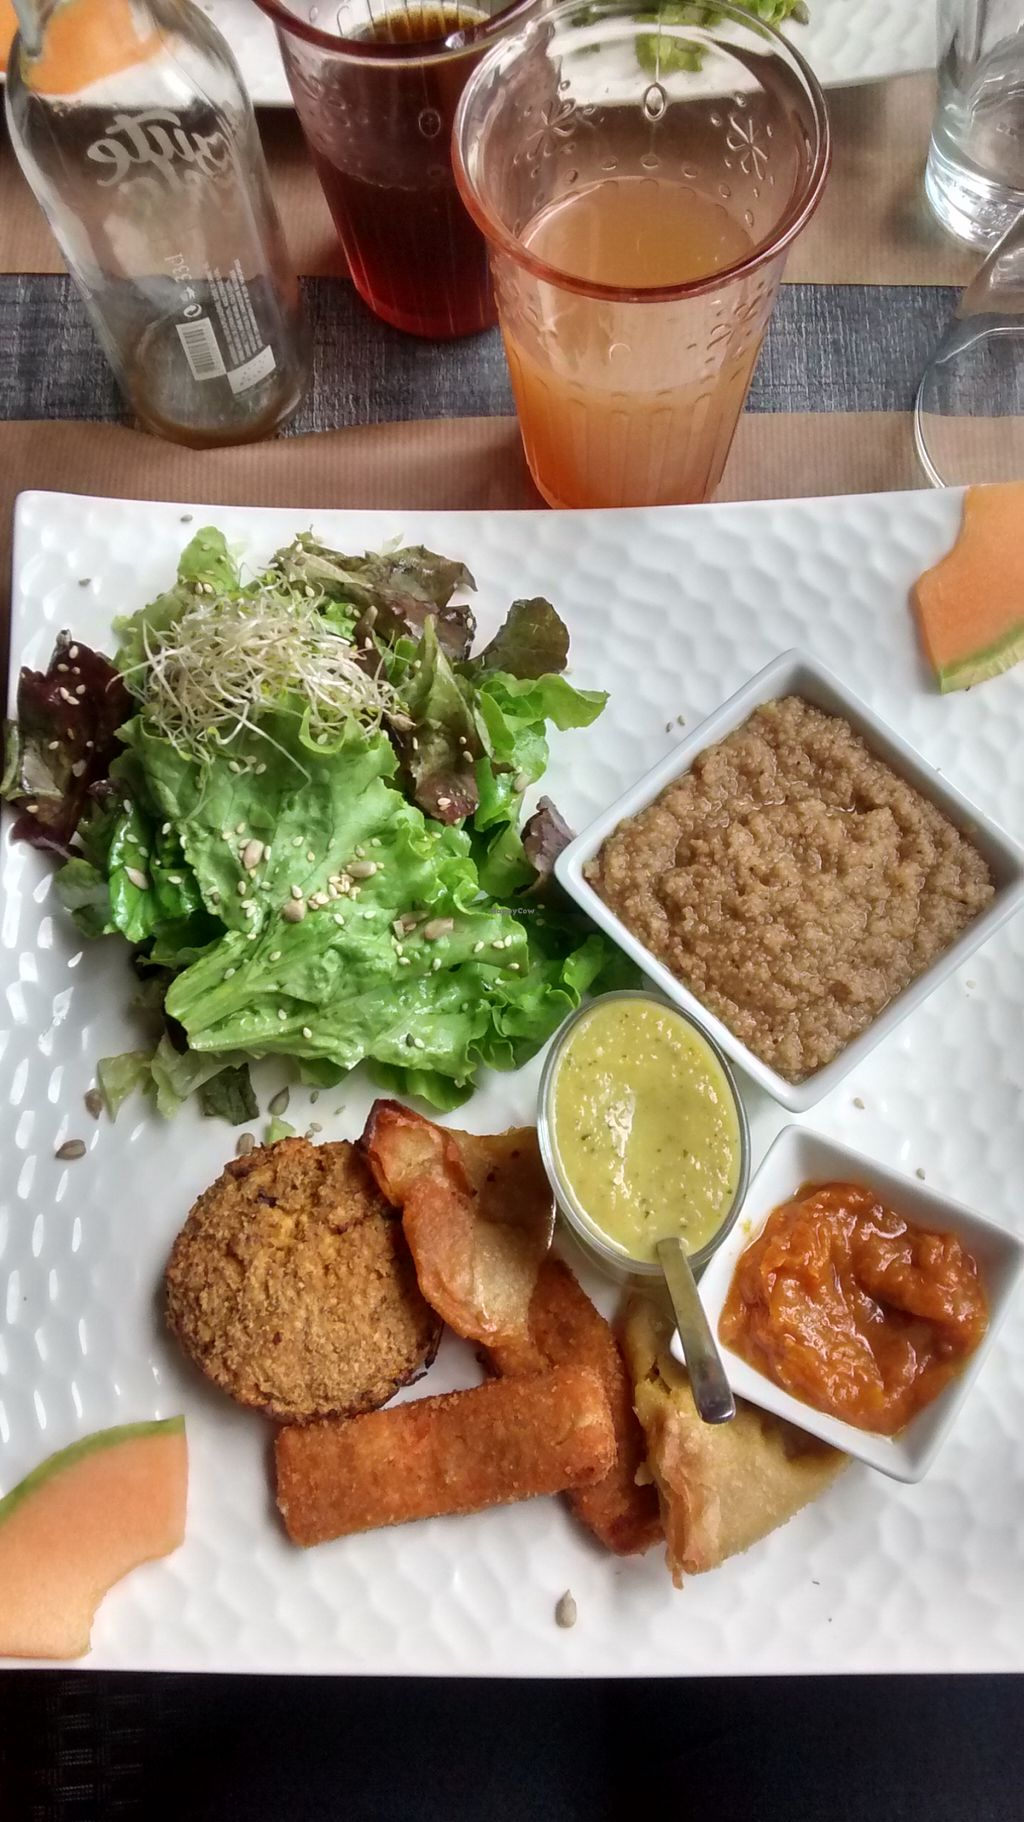 """Photo of L'Heure Bio  by <a href=""""/members/profile/BlisterBlue"""">BlisterBlue</a> <br/>Tofu steaks, vegetable samosas, fonio risotto, zucchini soup and salad <br/> August 15, 2015  - <a href='/contact/abuse/image/47373/113671'>Report</a>"""